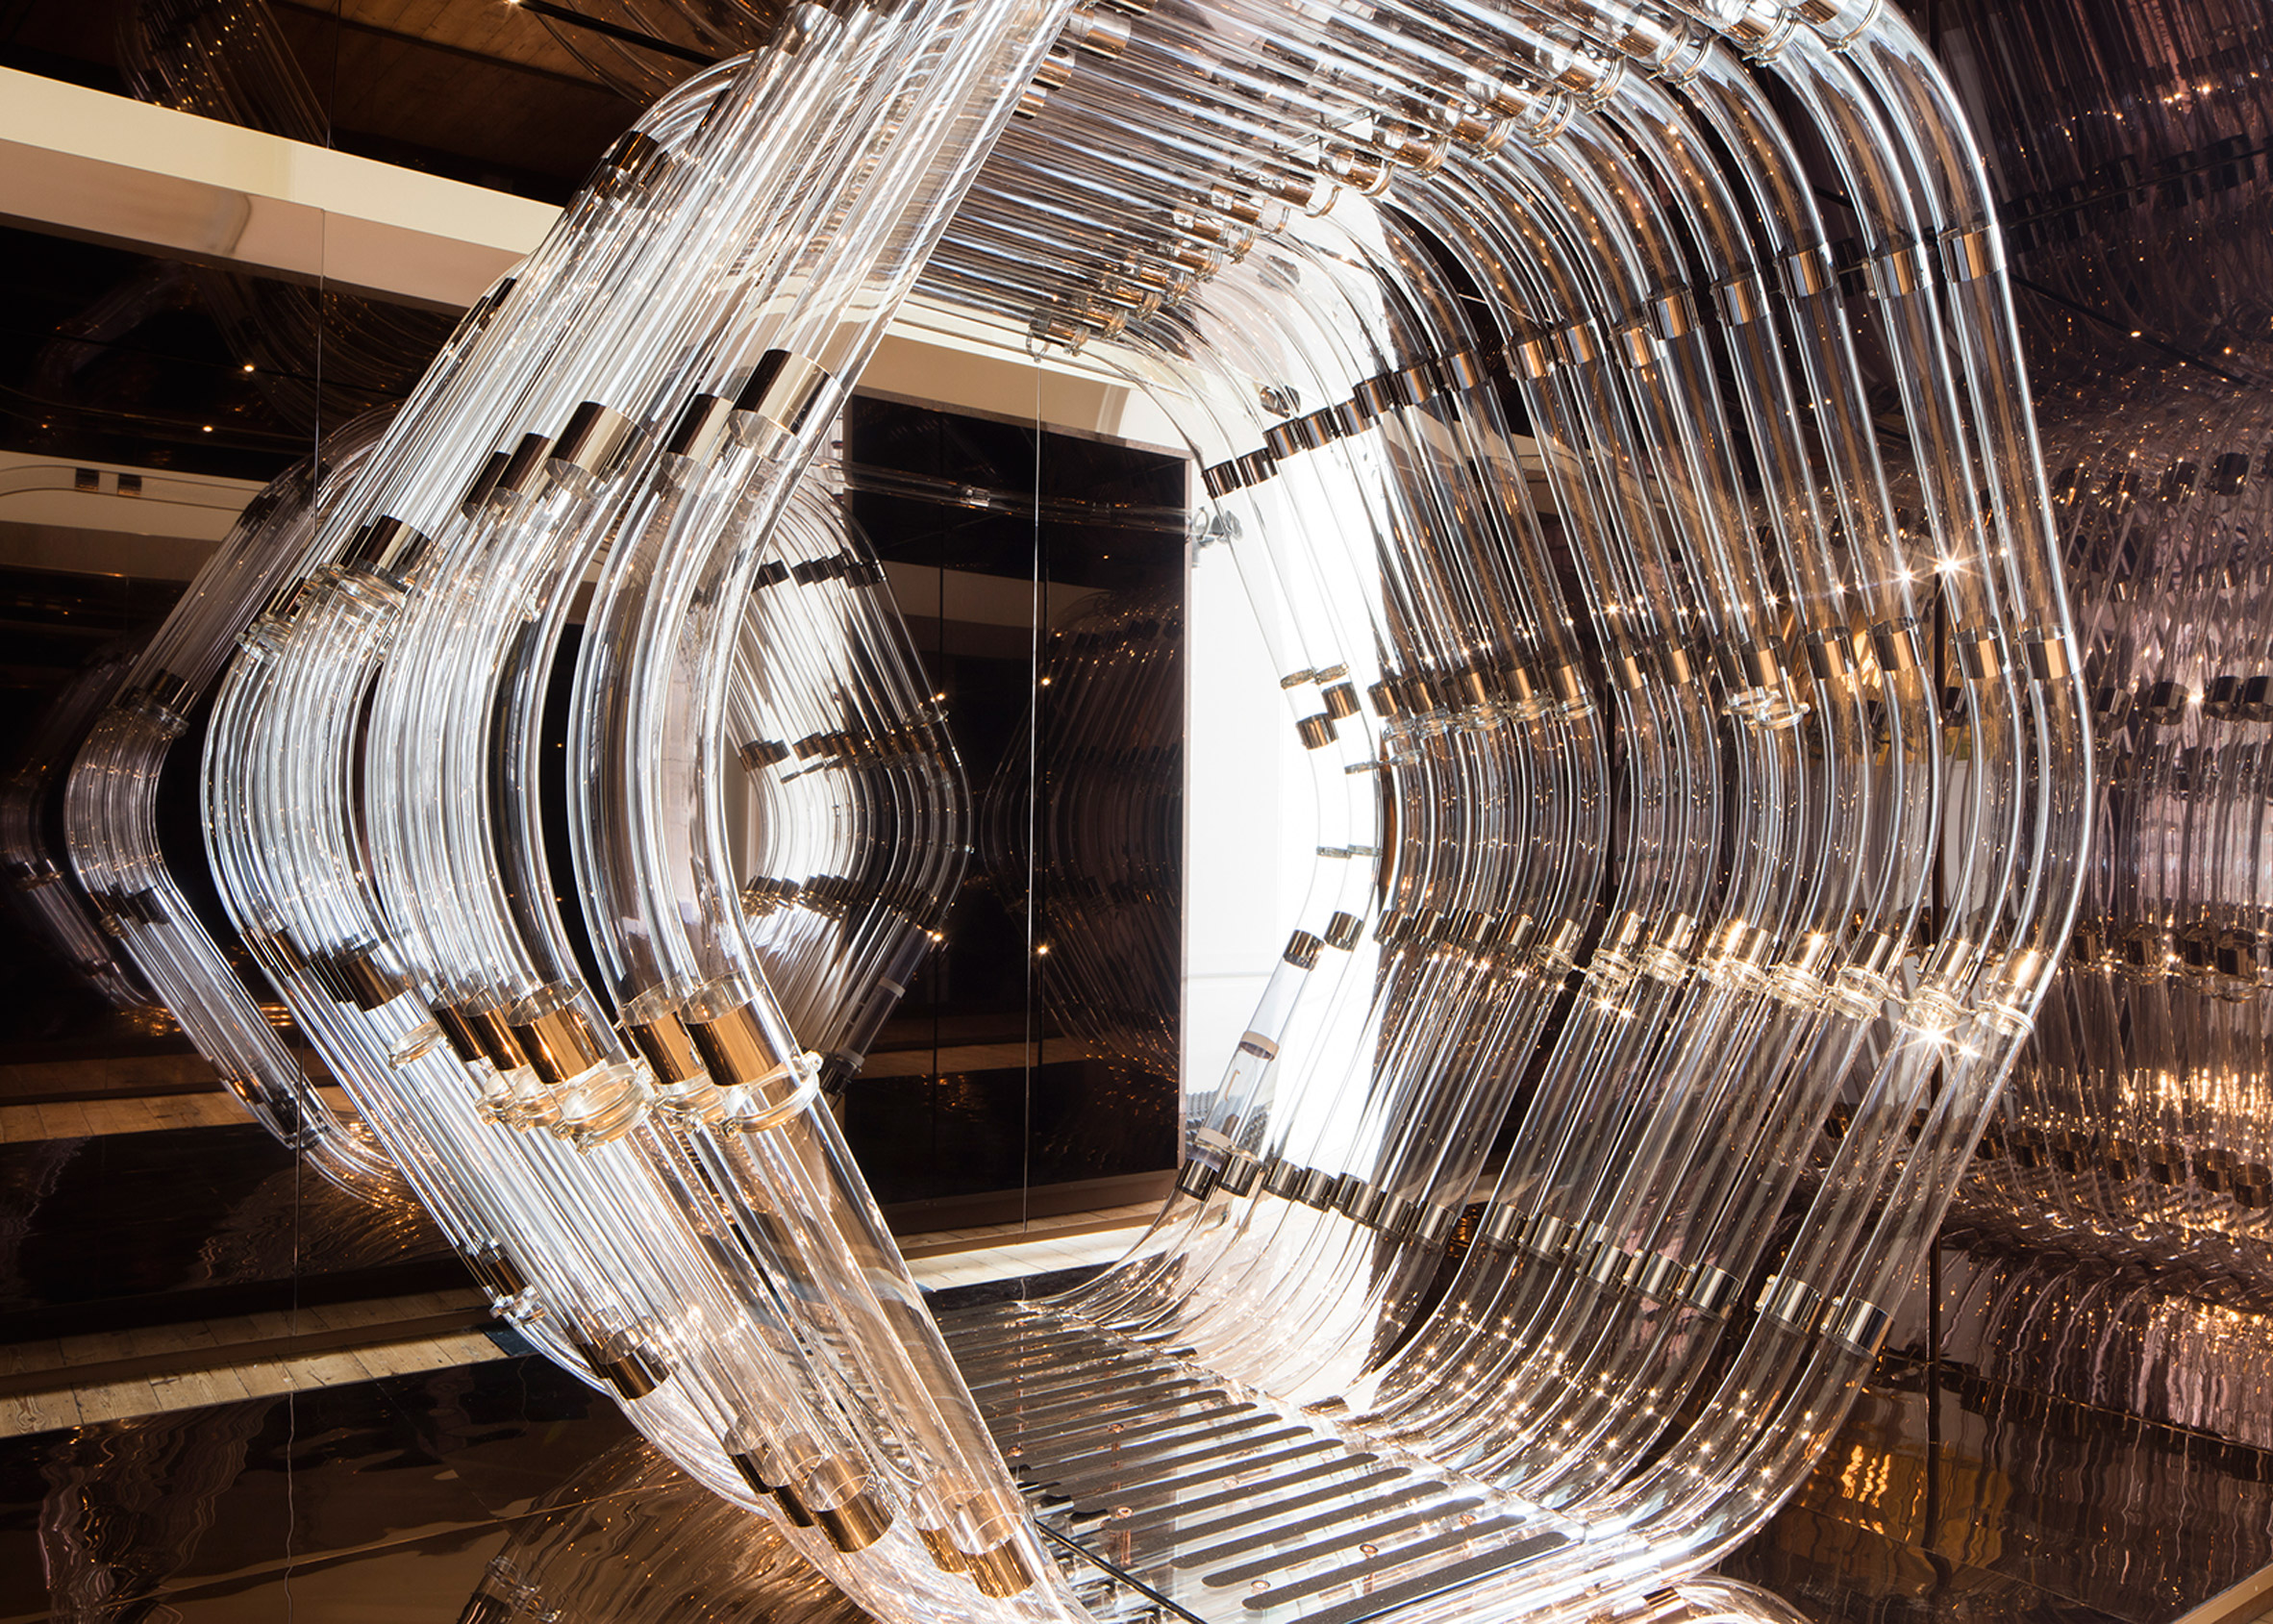 The Wish Machine by Autoban at the London Design Biennale 2016